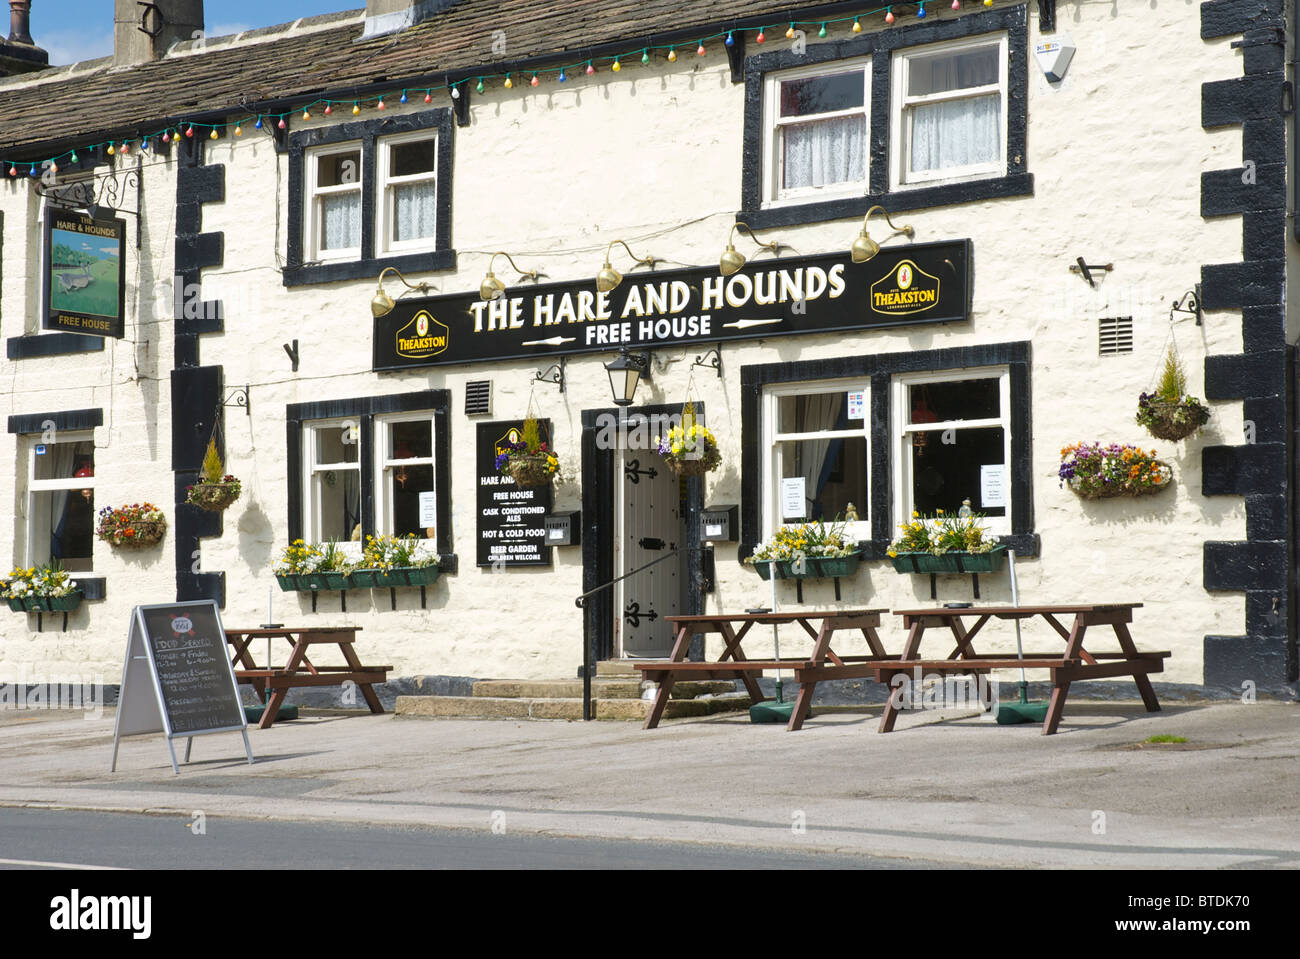 The Hare and Hounds pub in the village of Lothersdale, North Yorkshire, England UK - Stock Image